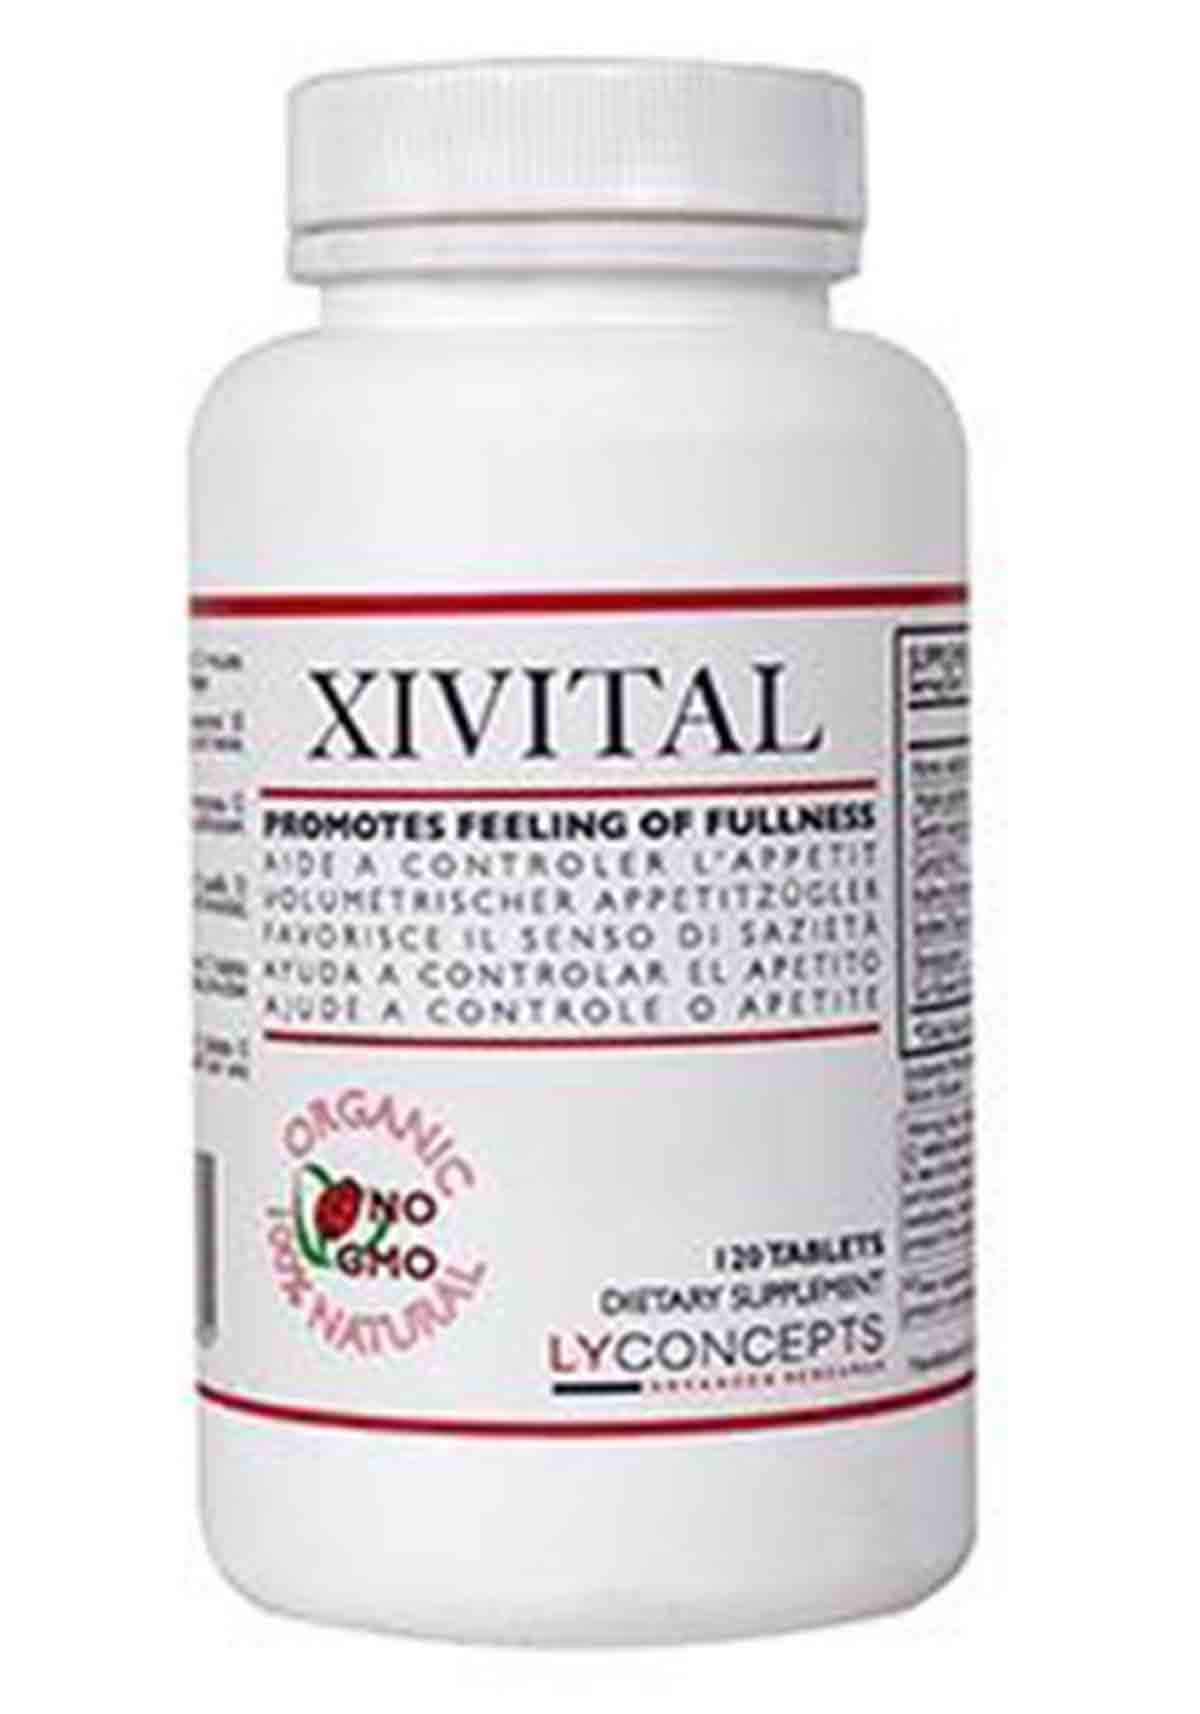 Xivital Appetite Suppressant